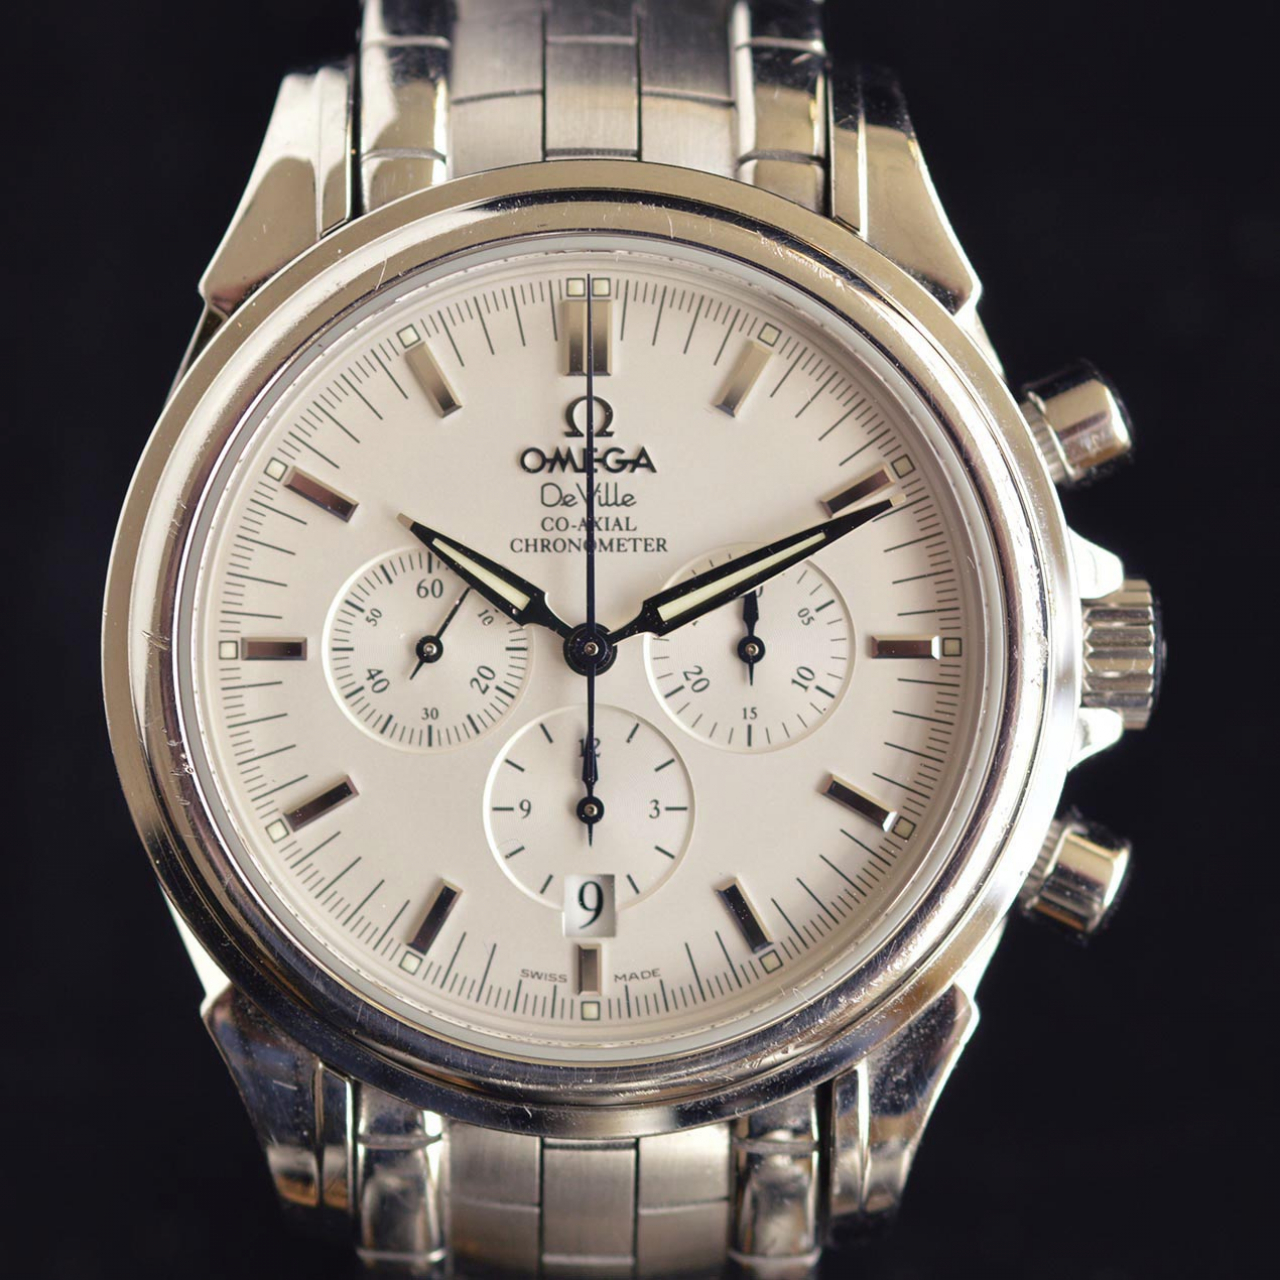 omega-de-ville-co-axial-chronograph-chronometer-stainless-steel-ref-45413100-cal-3313